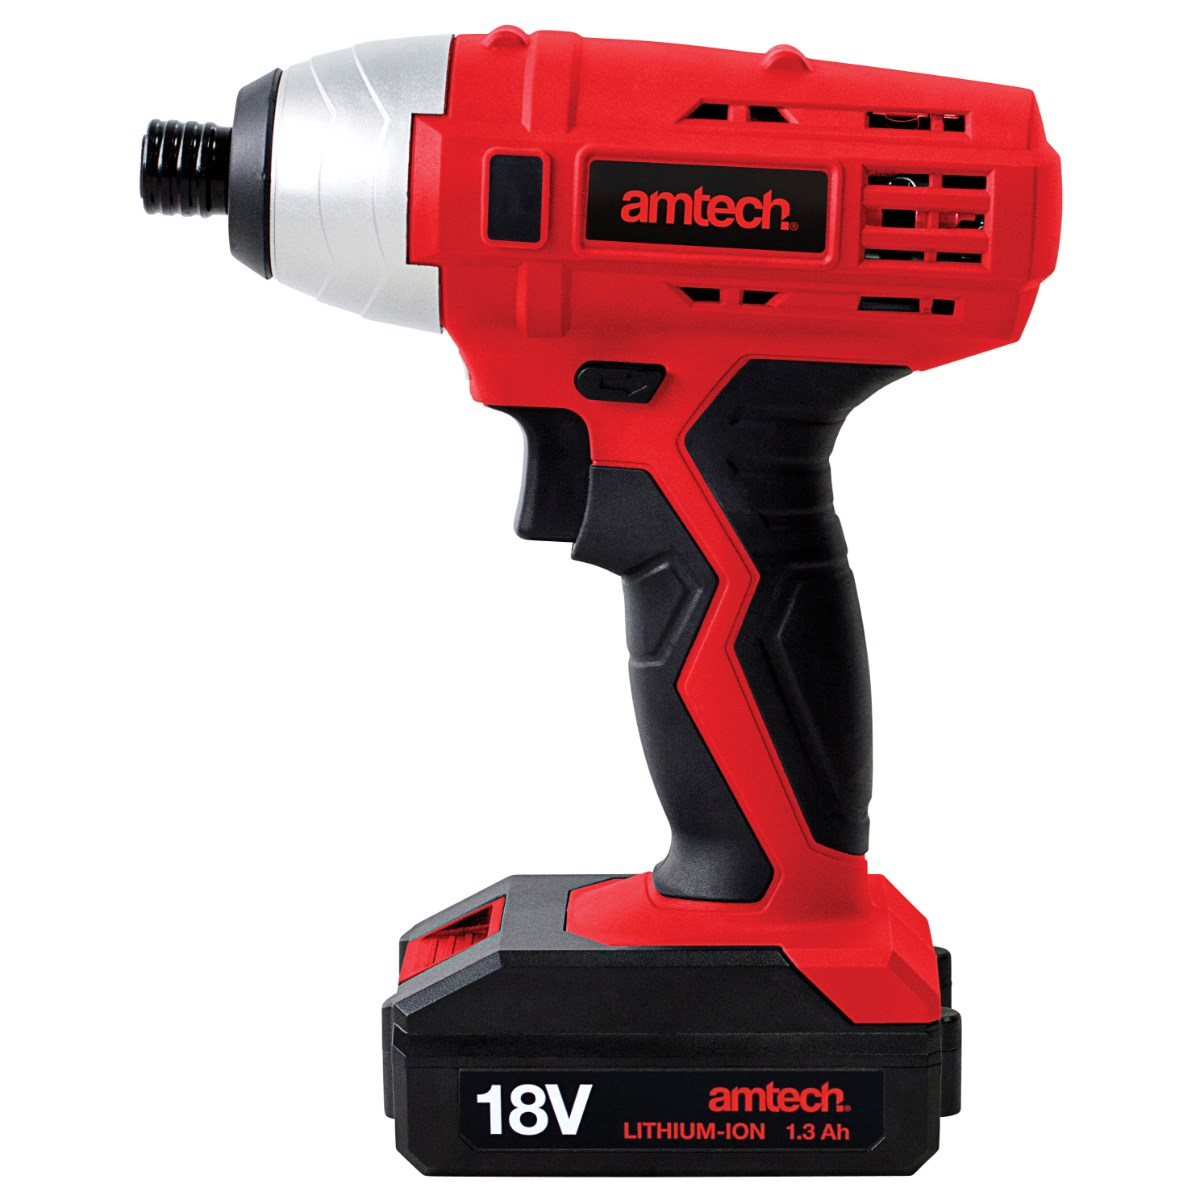 AMTECH 18V LI-ION CORDLESS COMBI DRILL DRIVER 1 HOUR FAST CHARGE HAMMER